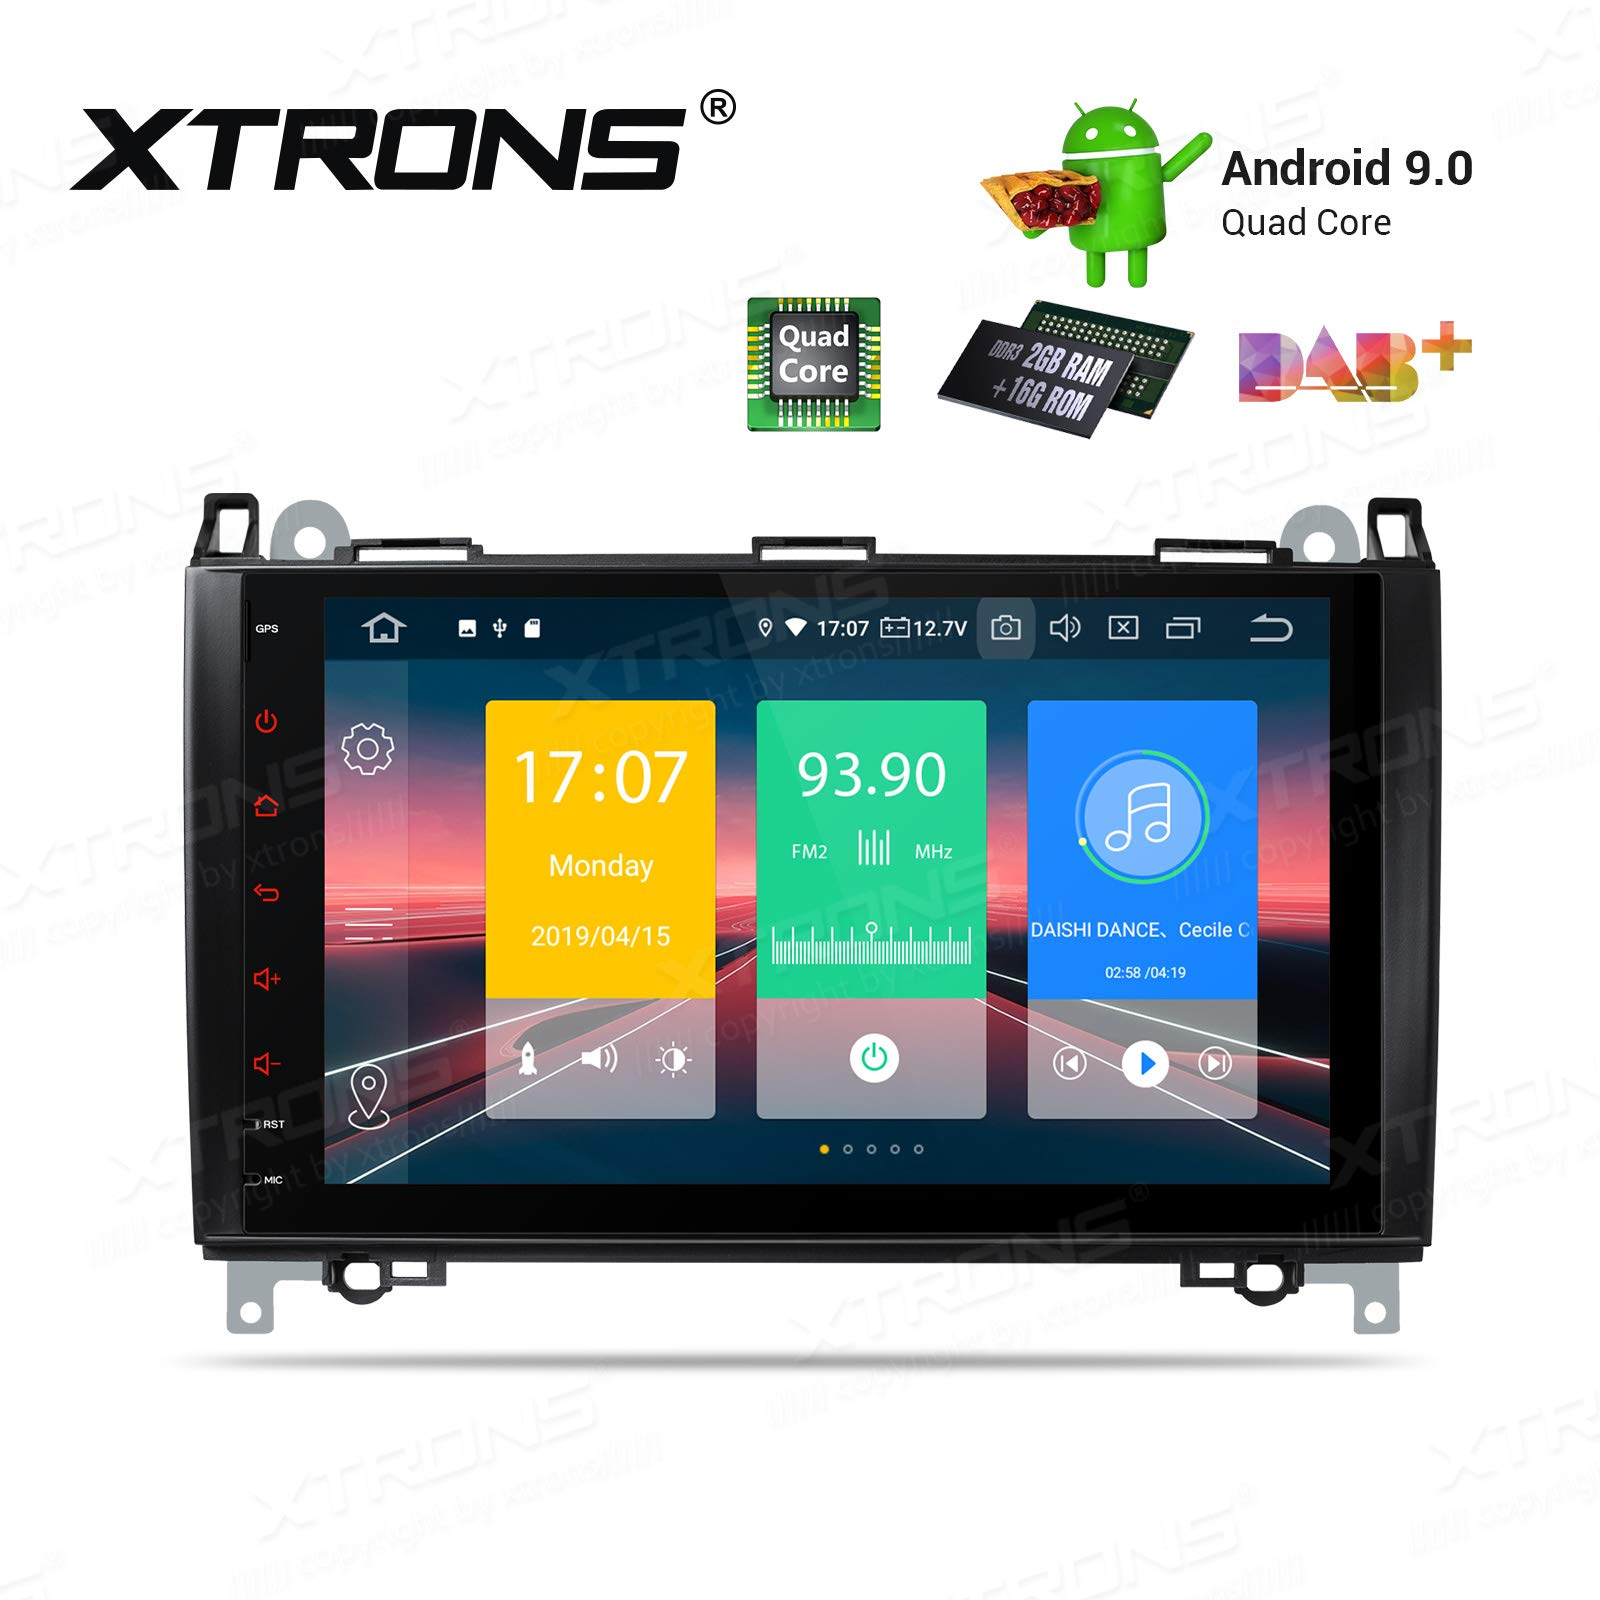 XTRONS Android 9.0 Car Stereo Radio GPS Navigation 9 Inch Touch Screen Slim Design Head Unit Supports Plug and Play WiFi Bluetooth 5.0 Backup Camera DVR OBD2 TPMS for Mercedes Benz W169 W245 W639